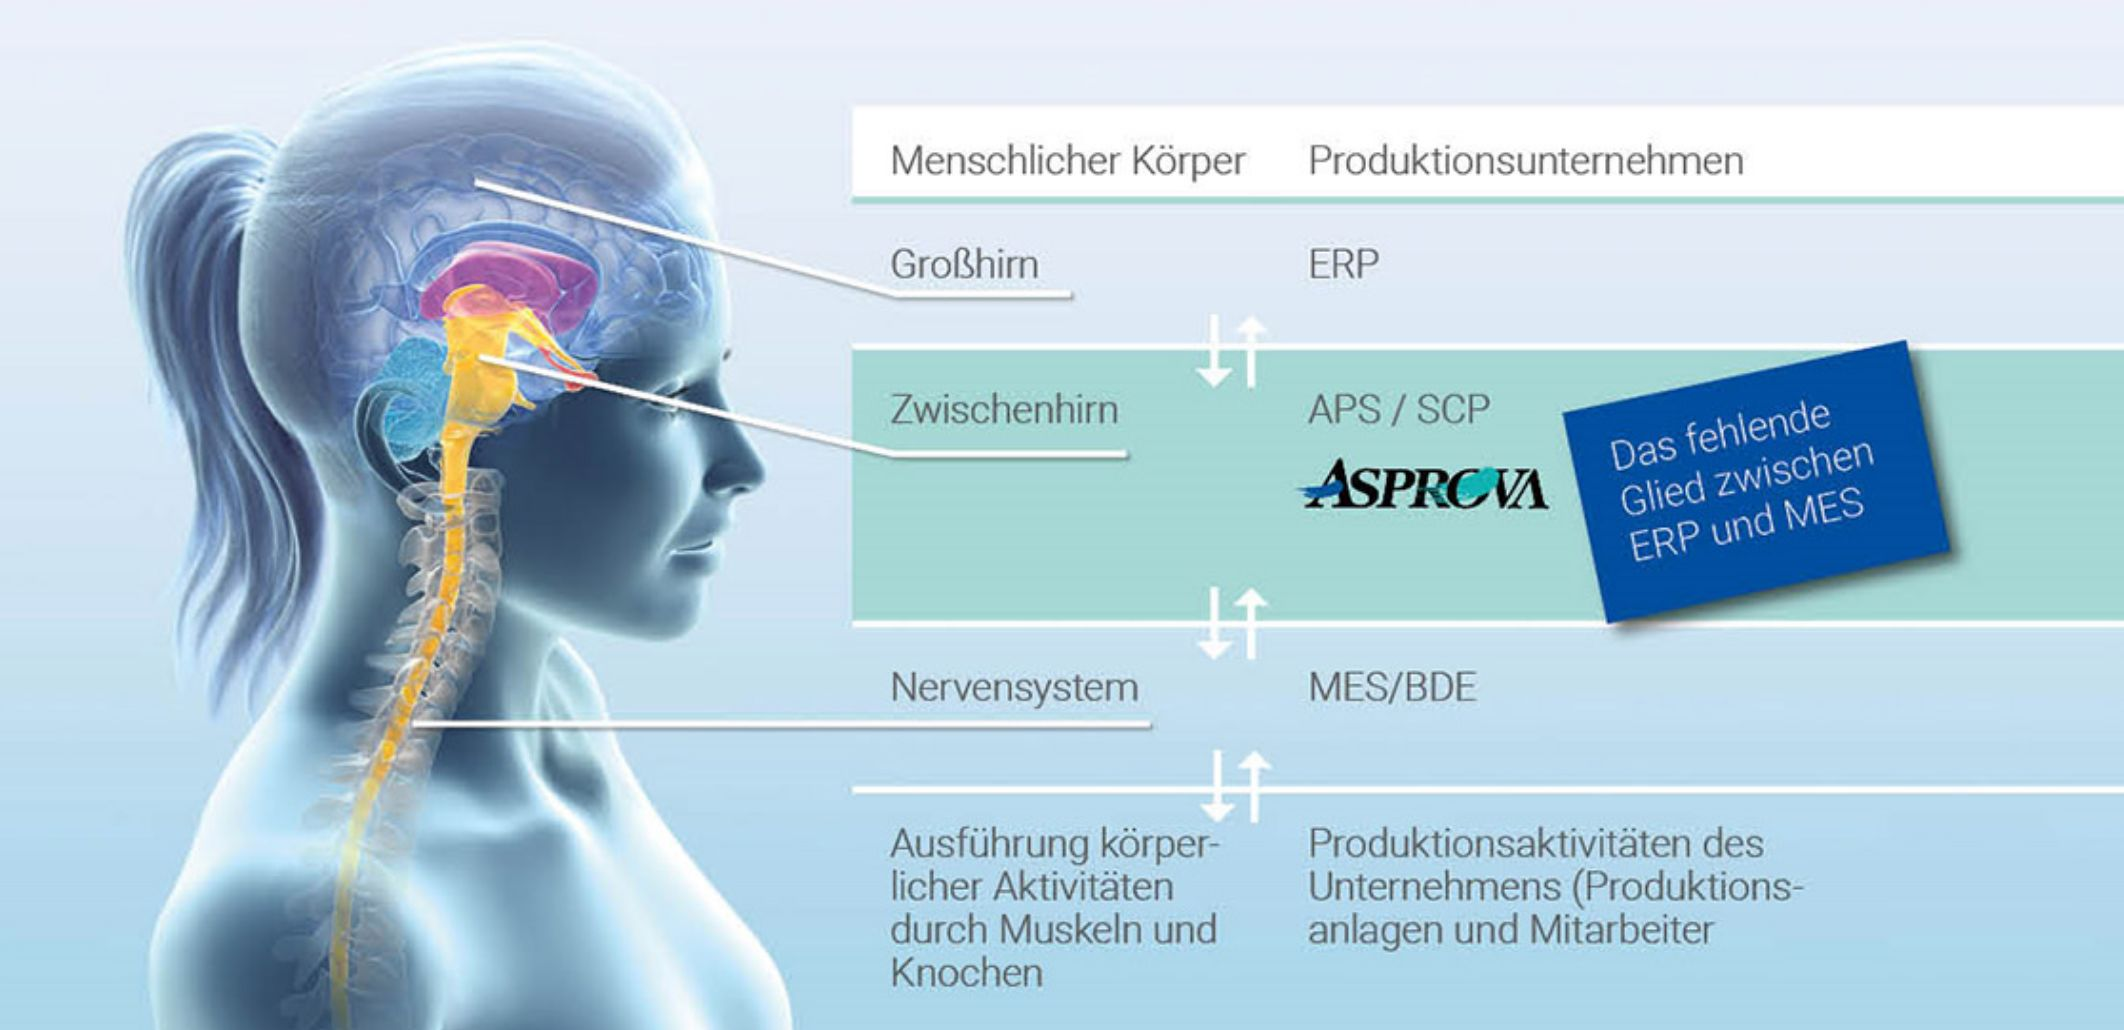 Produktionsplanung mit APS-Software